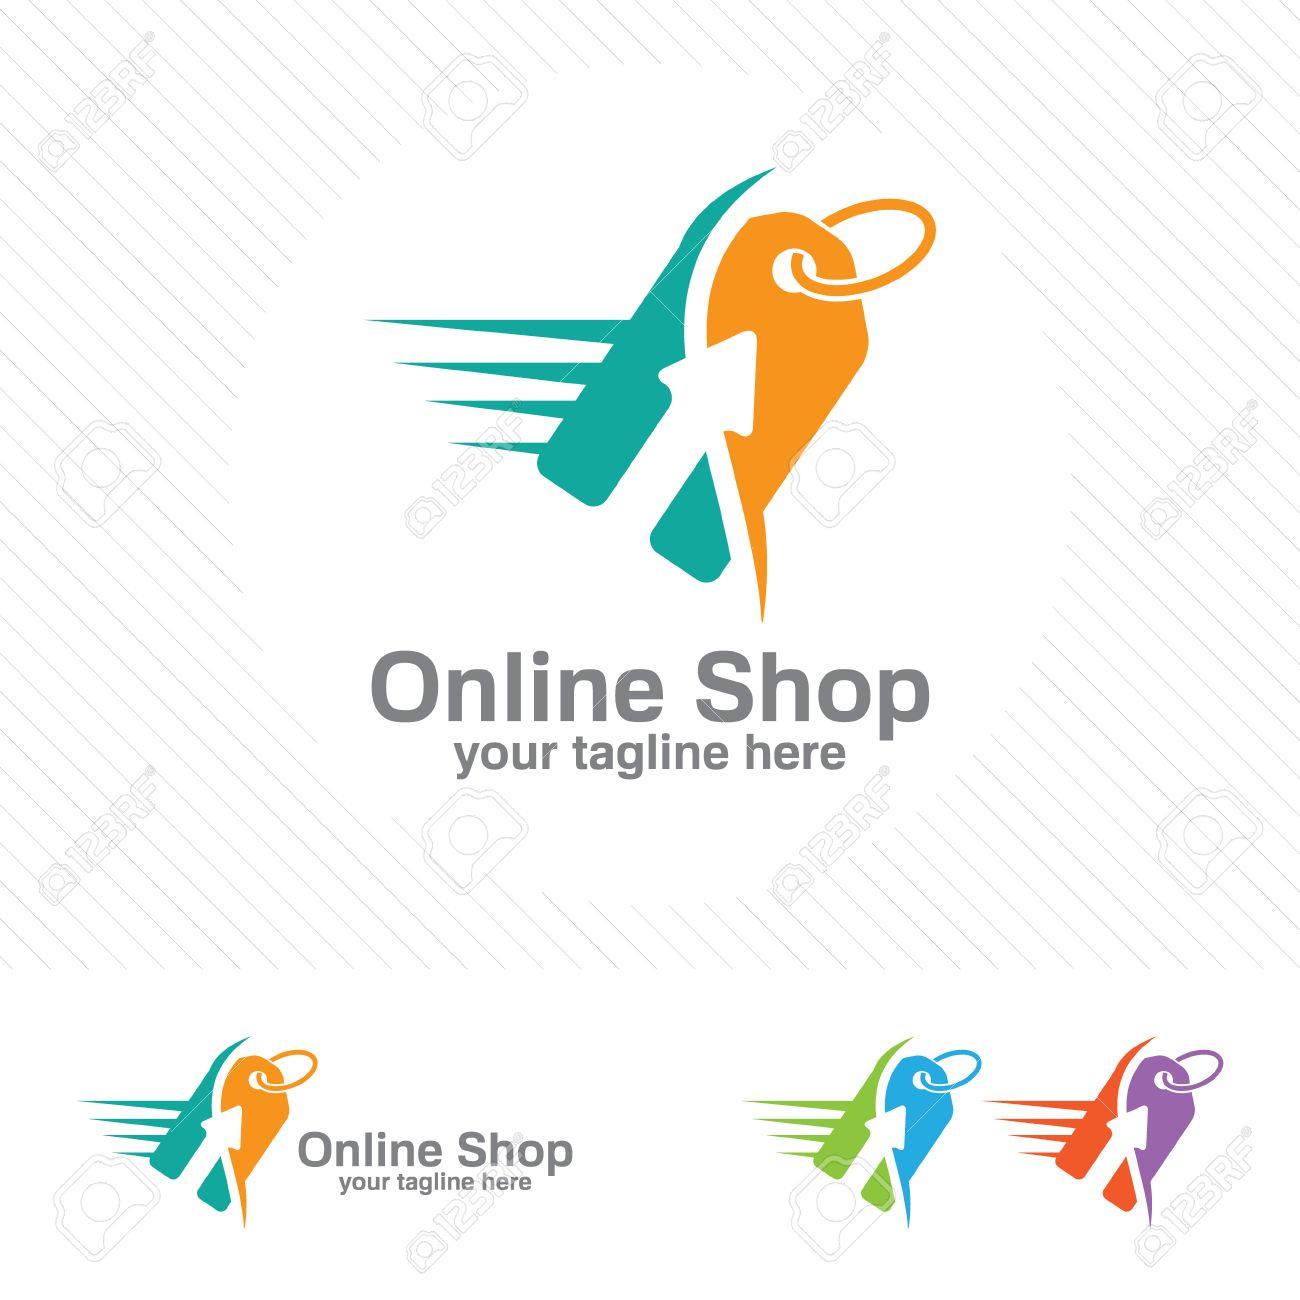 Online Store Logo Design Vector Shopping Cart And Price Tag